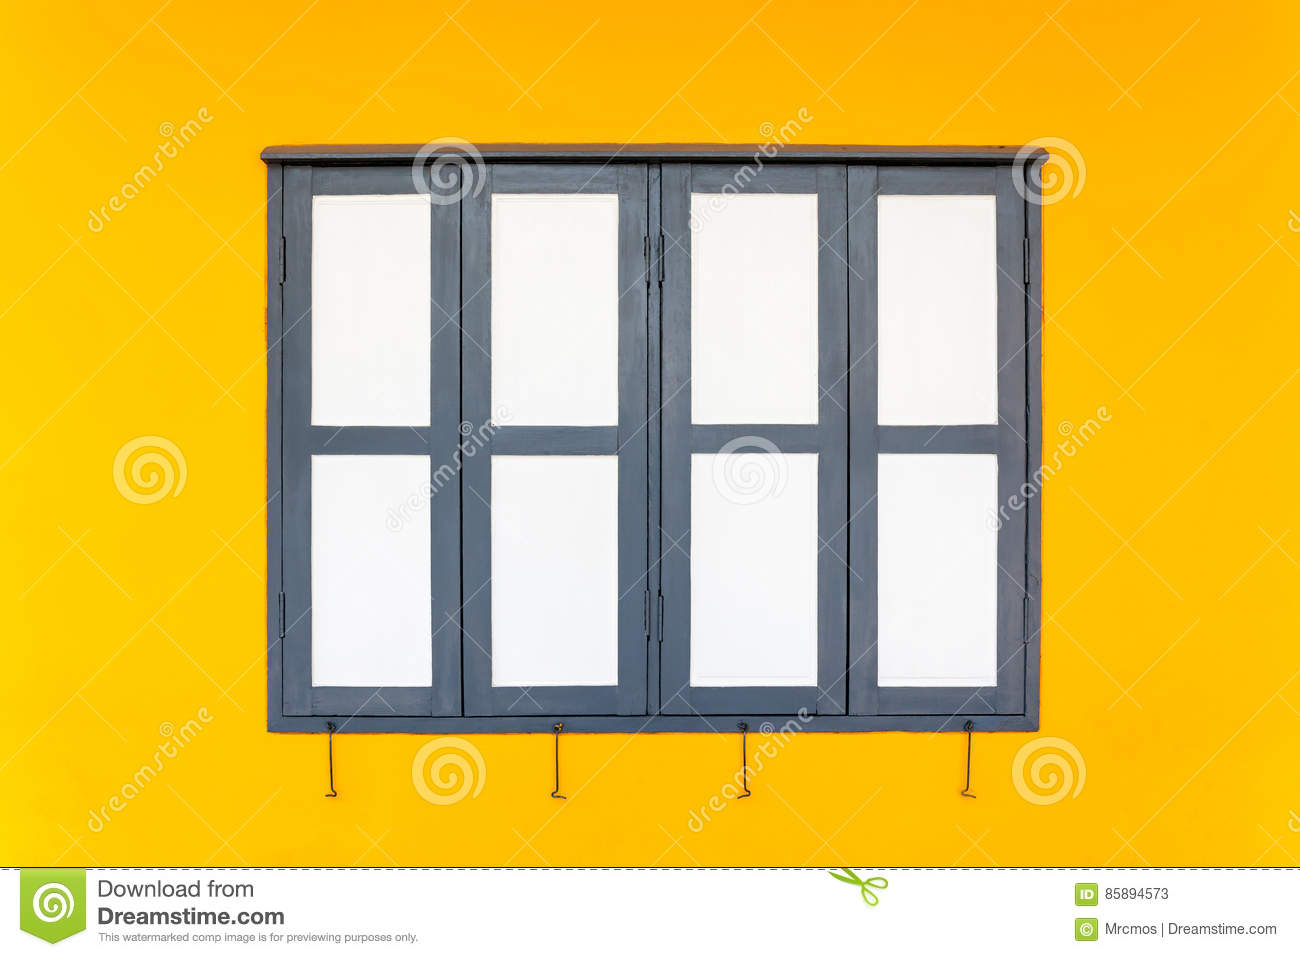 lively style of architecture building white windows with frame